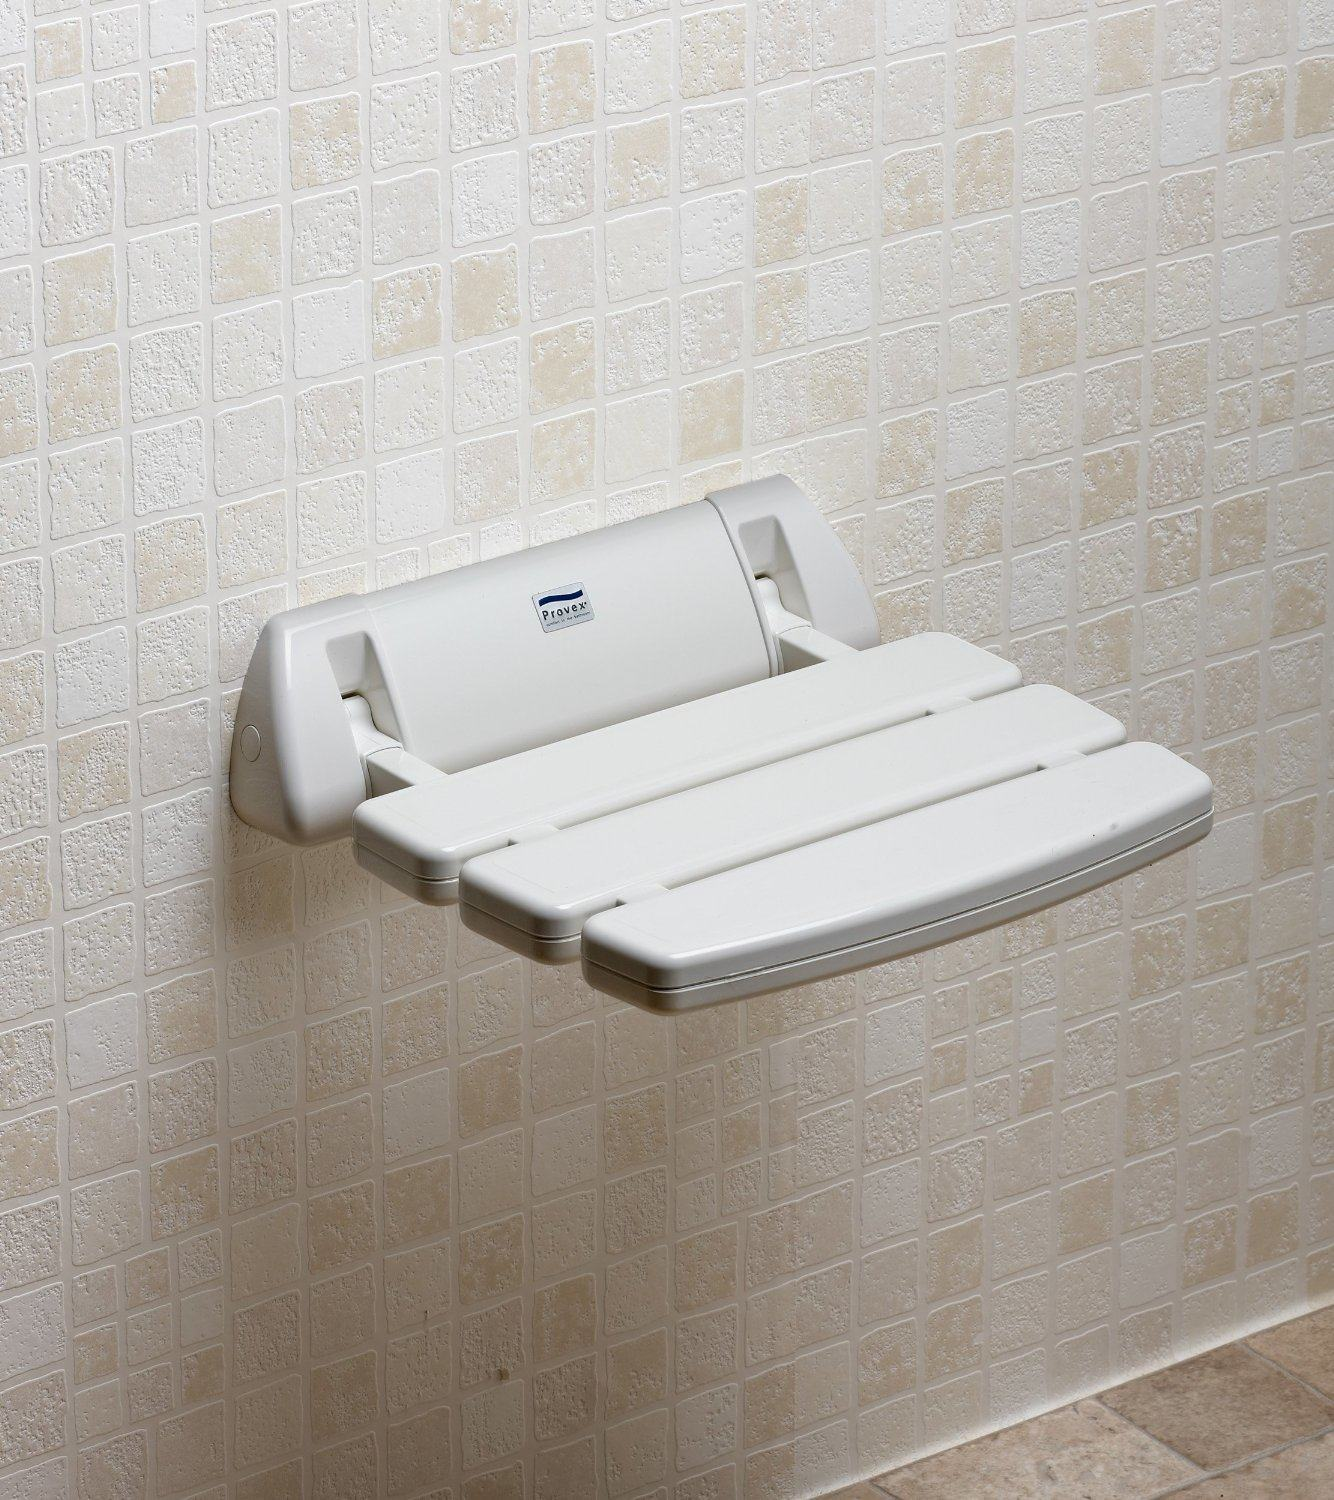 Promed Wall Mounted Folding Slatted Shower Seat Shower